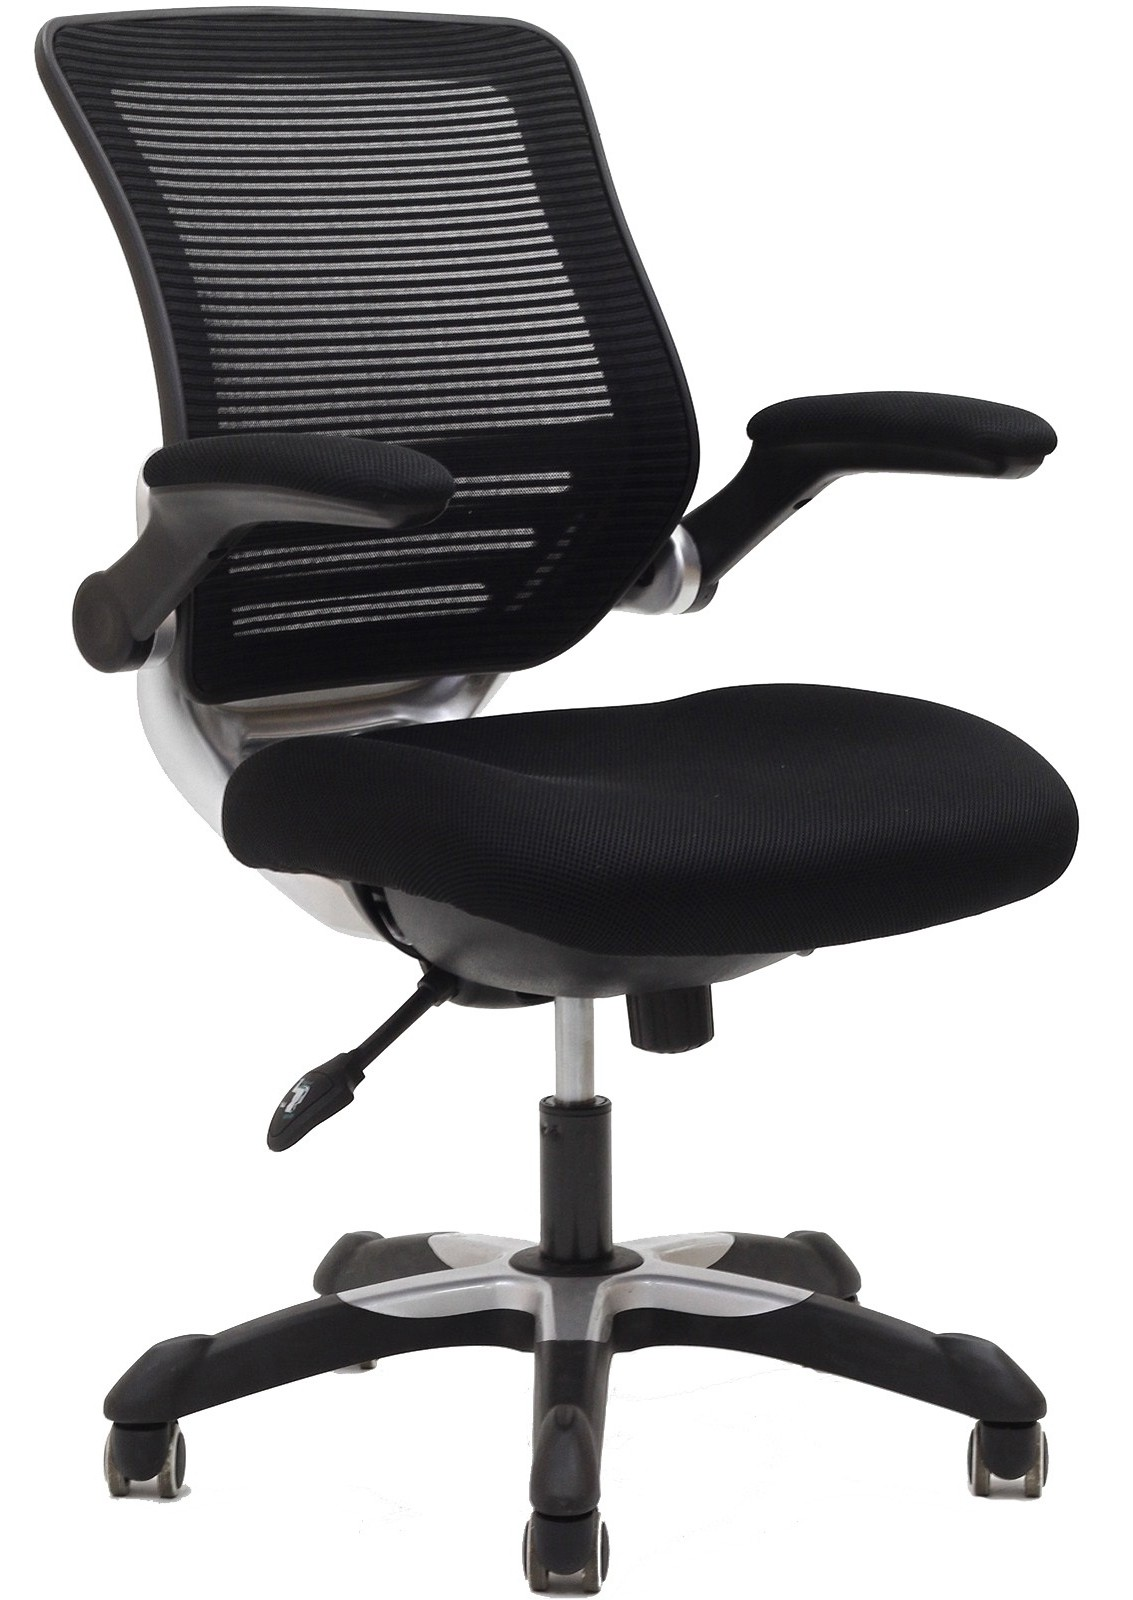 Cloth Covered Office Chairs Edge Office Chair With Black Mesh Fabric Seat From